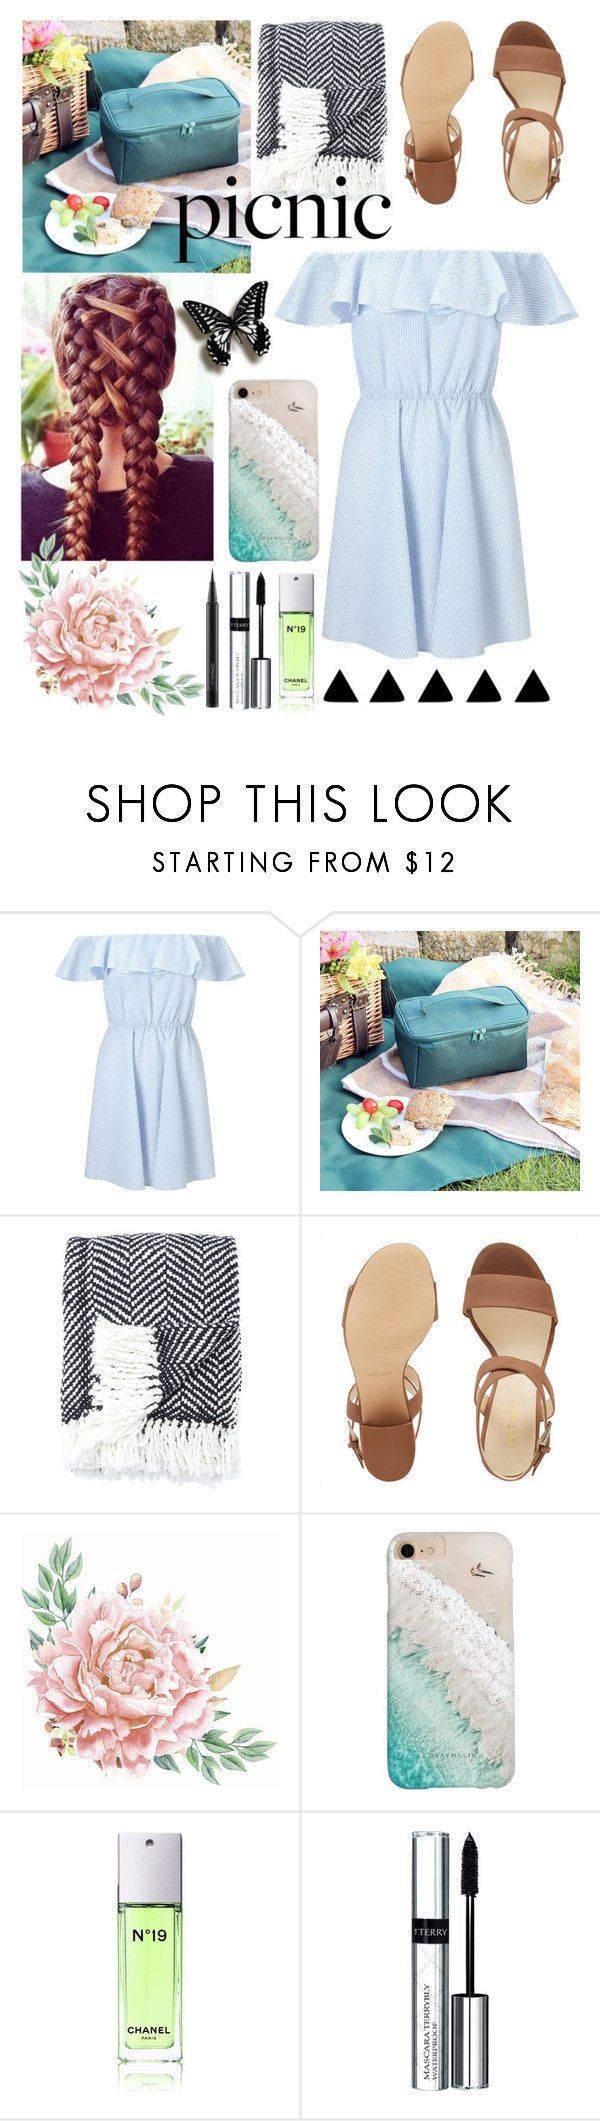 """Picnic"" by slytherin-for-life ❤ liked on Polyvore featuring Miss Selfridge, Kate Spade, Nine West, Gray Malin, Chanel, By Terry and MAC Cosmetics"